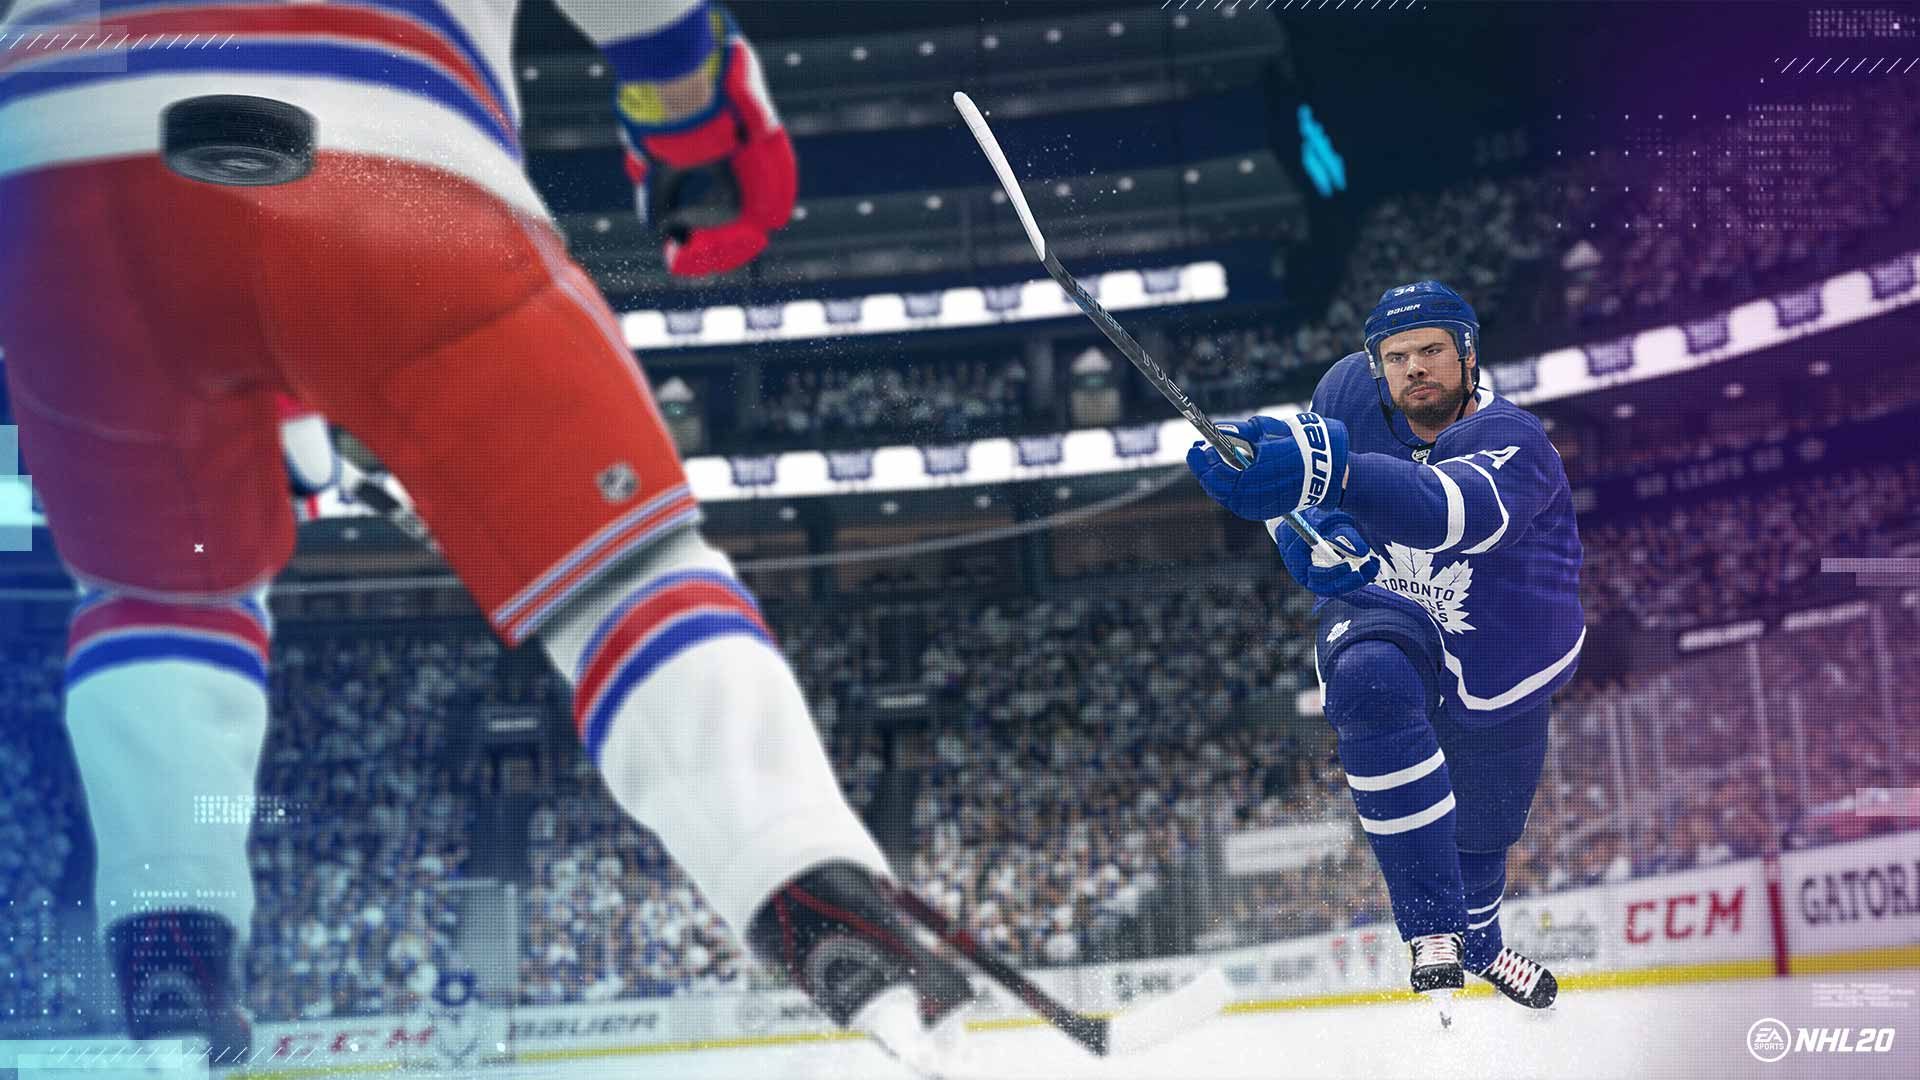 NHL 21 File Size